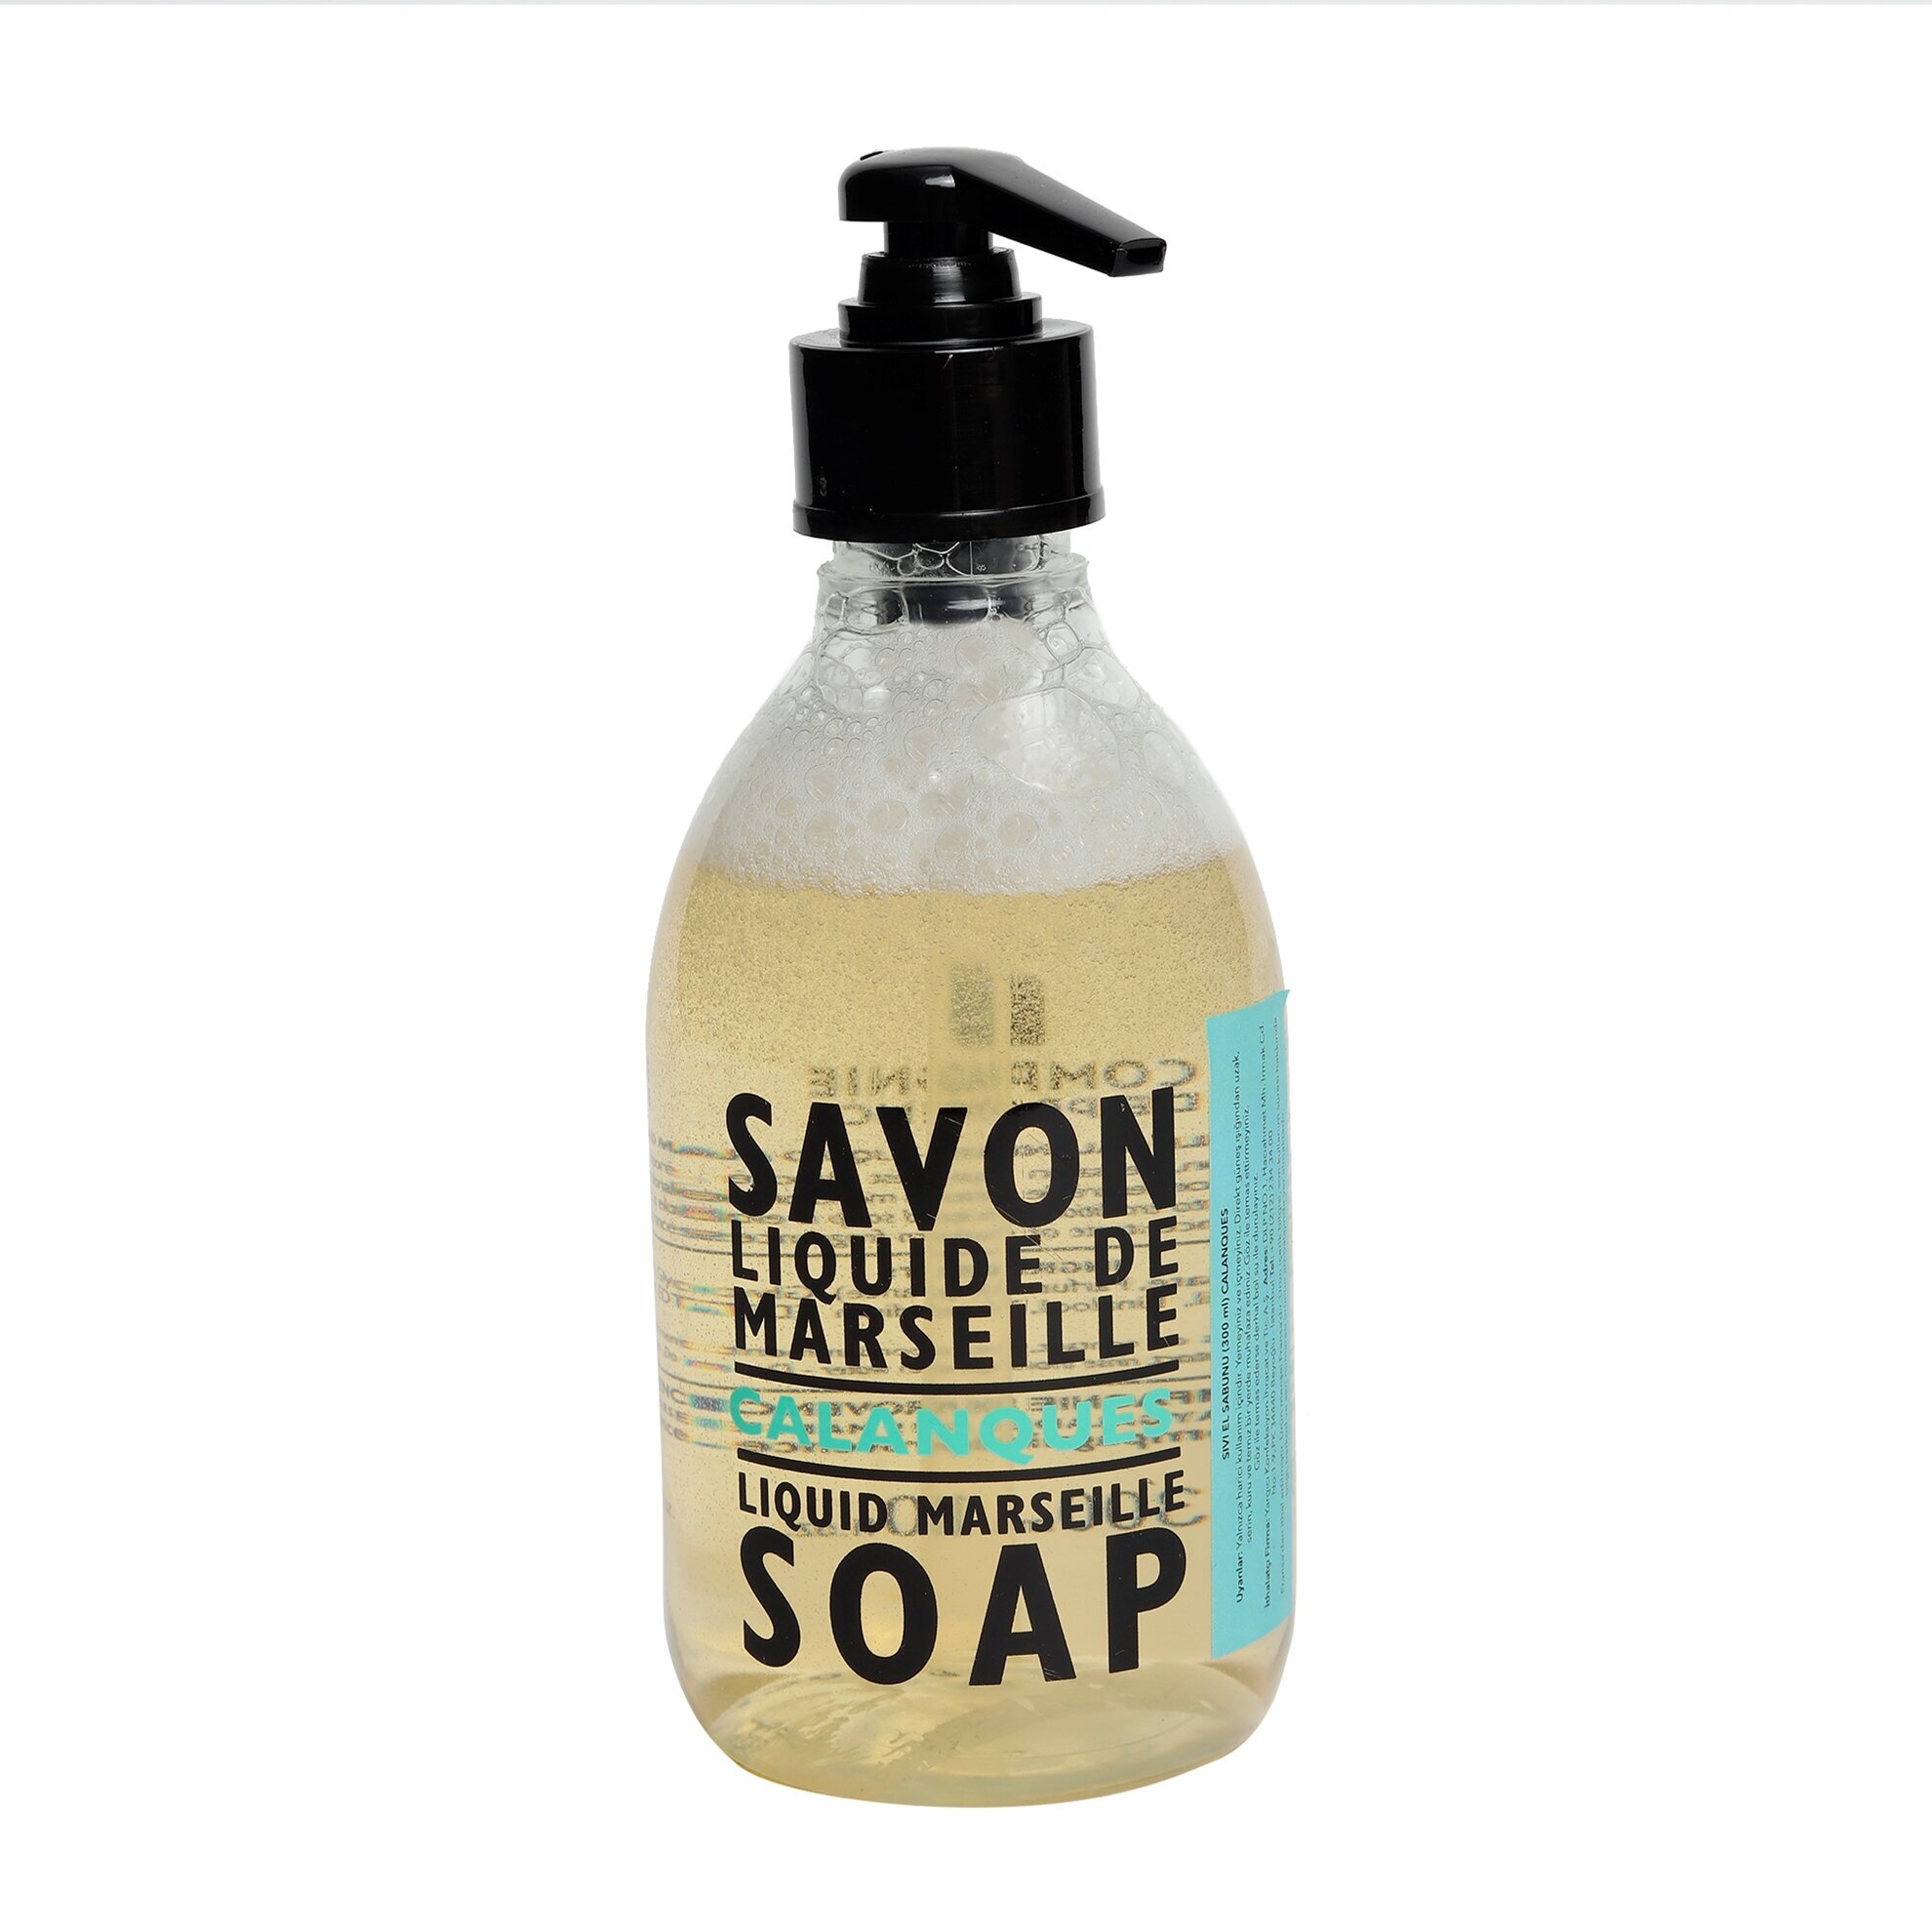 Liquid Marseille Soap (300 Ml) Calanques